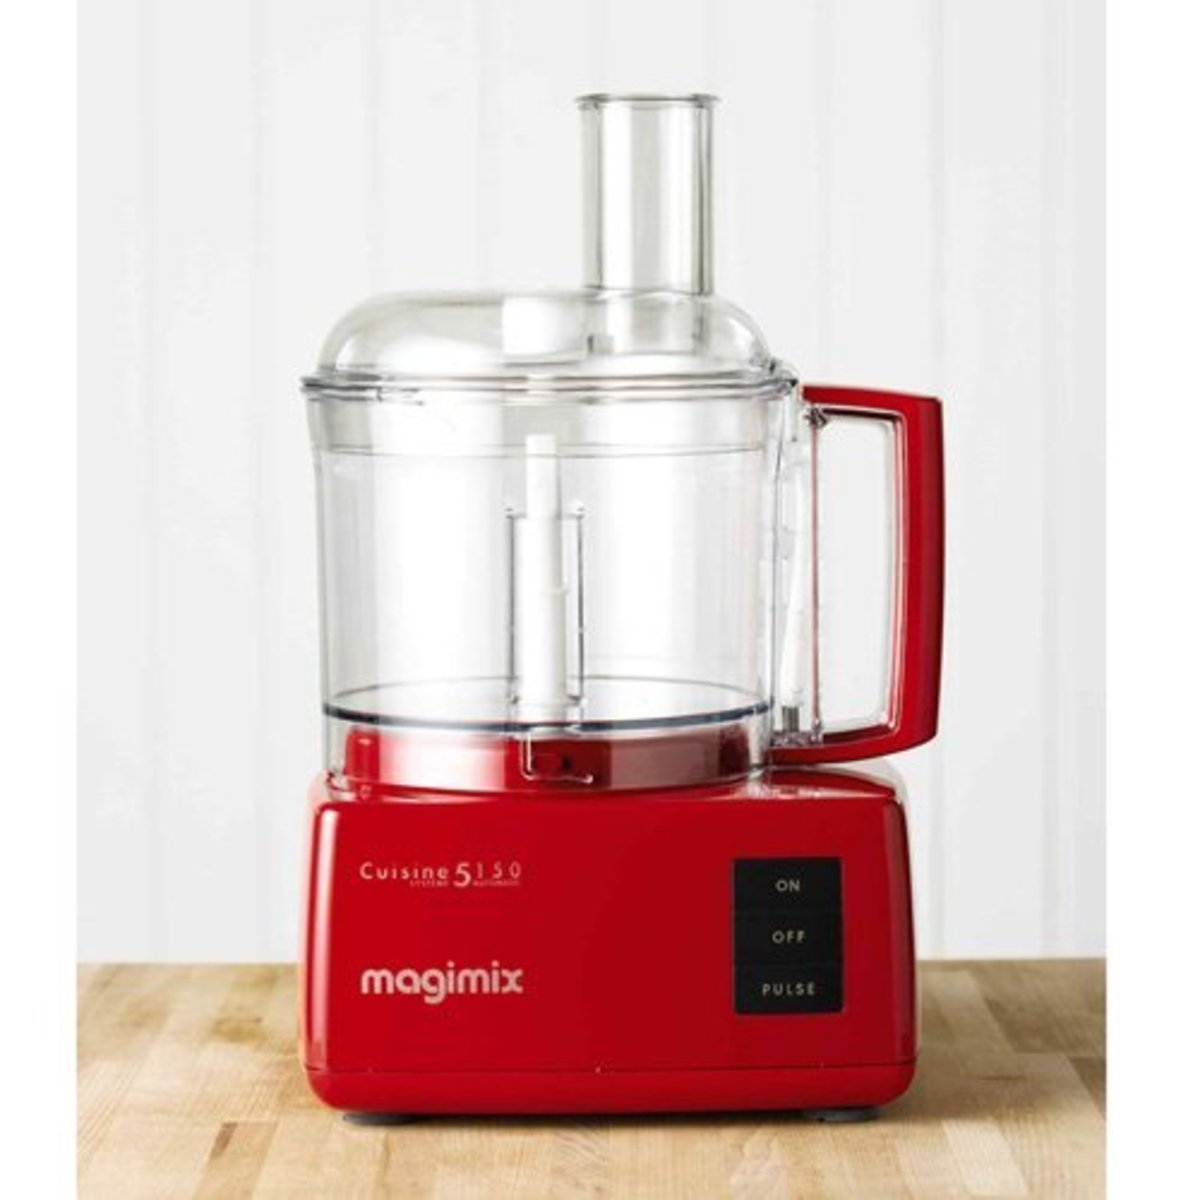 Best food processor magimix cuisine systeme 5150 hubpages for Cuisine 5100 magimix